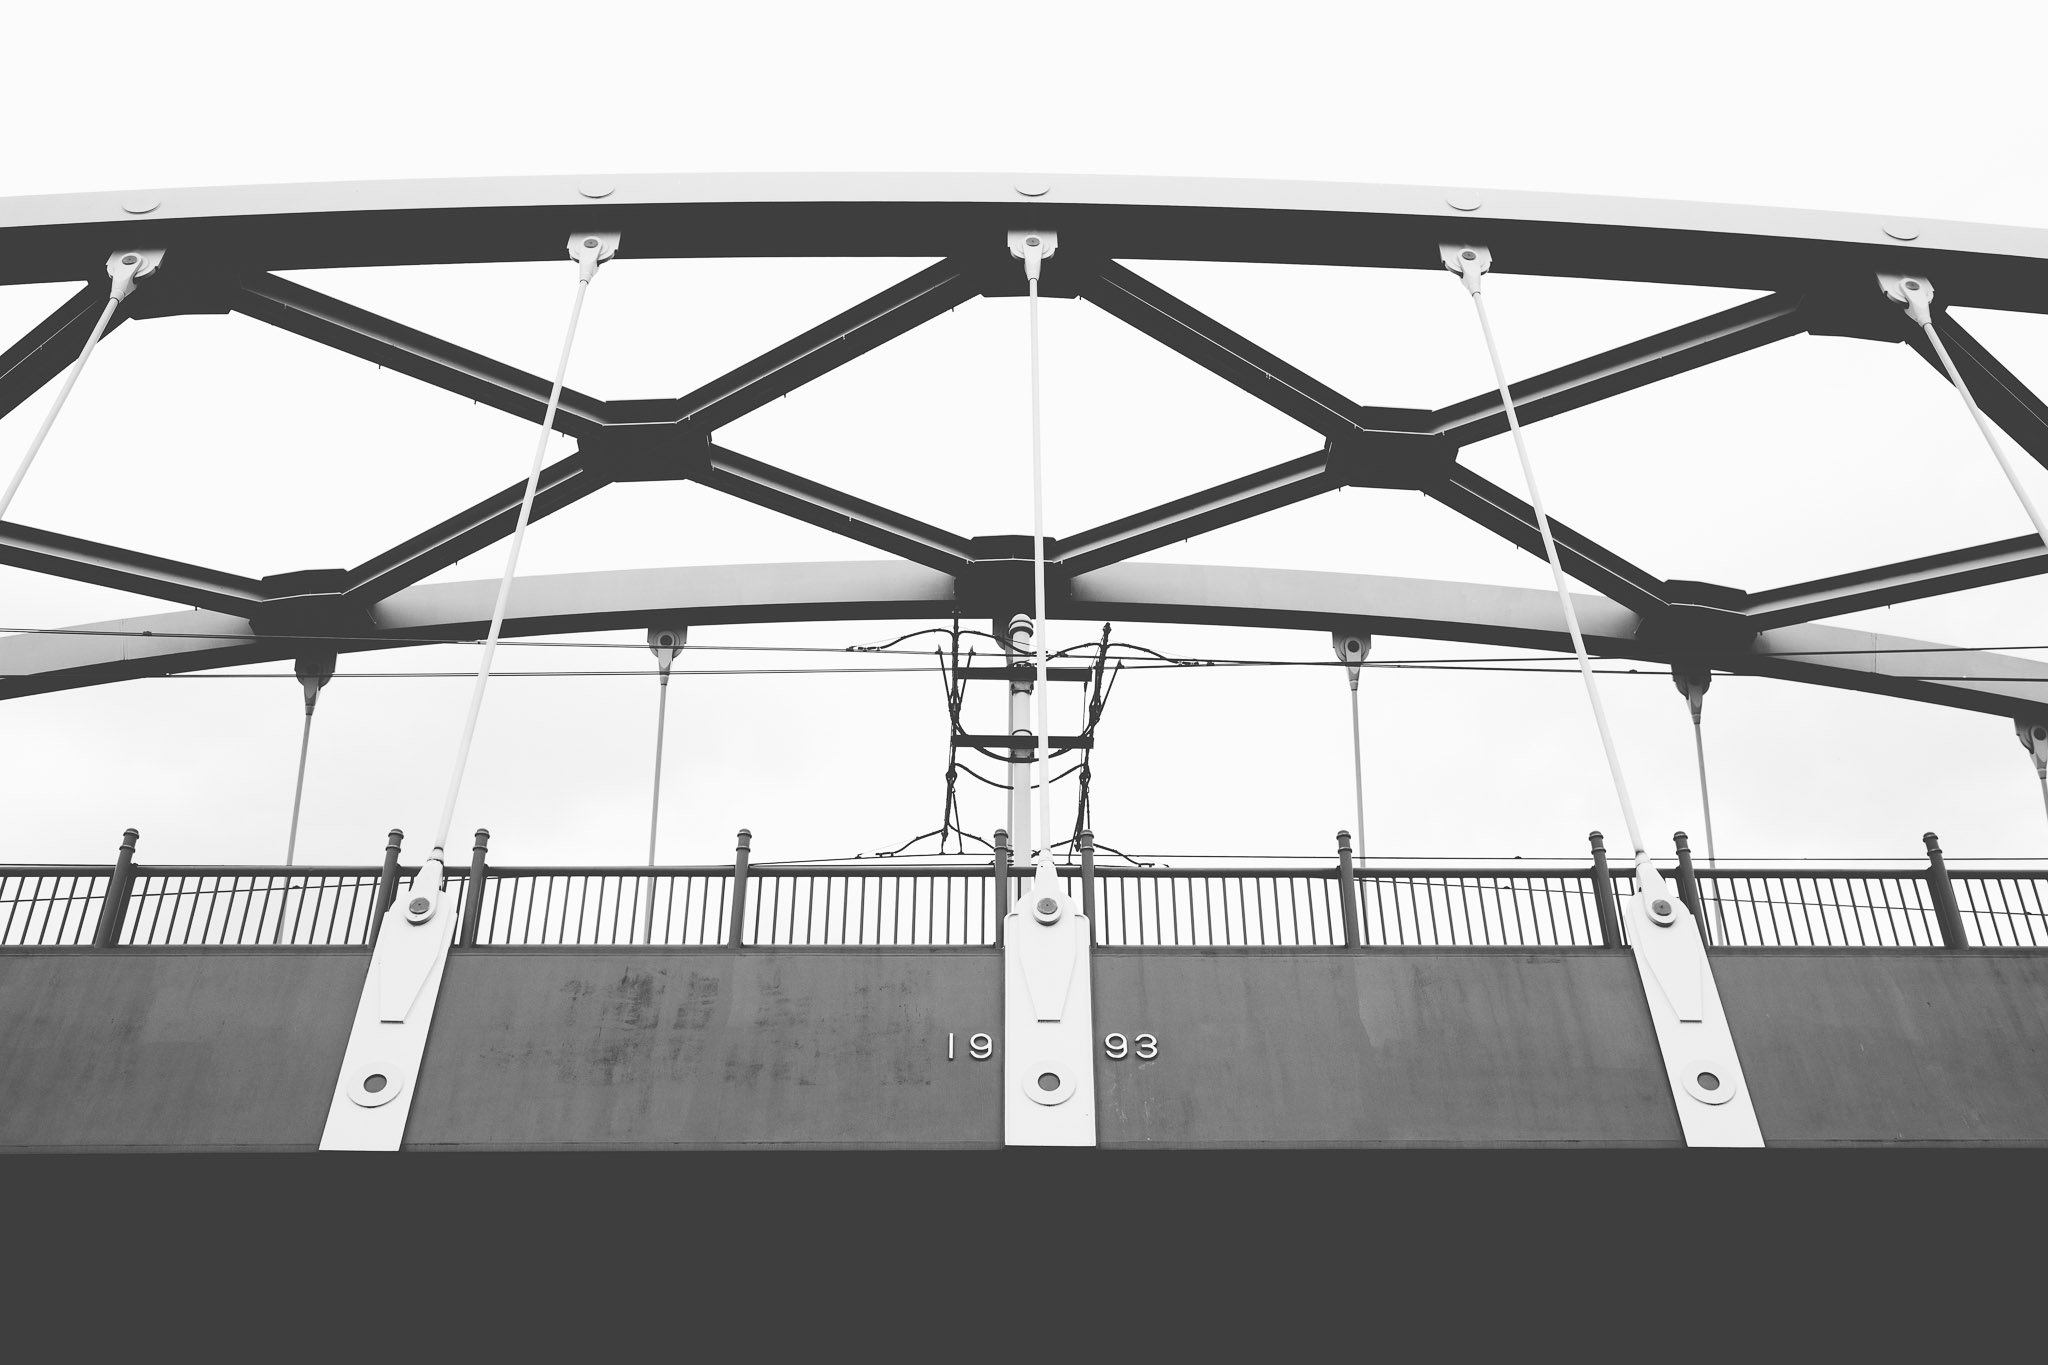 Detail of Tram bridge in Sheffield